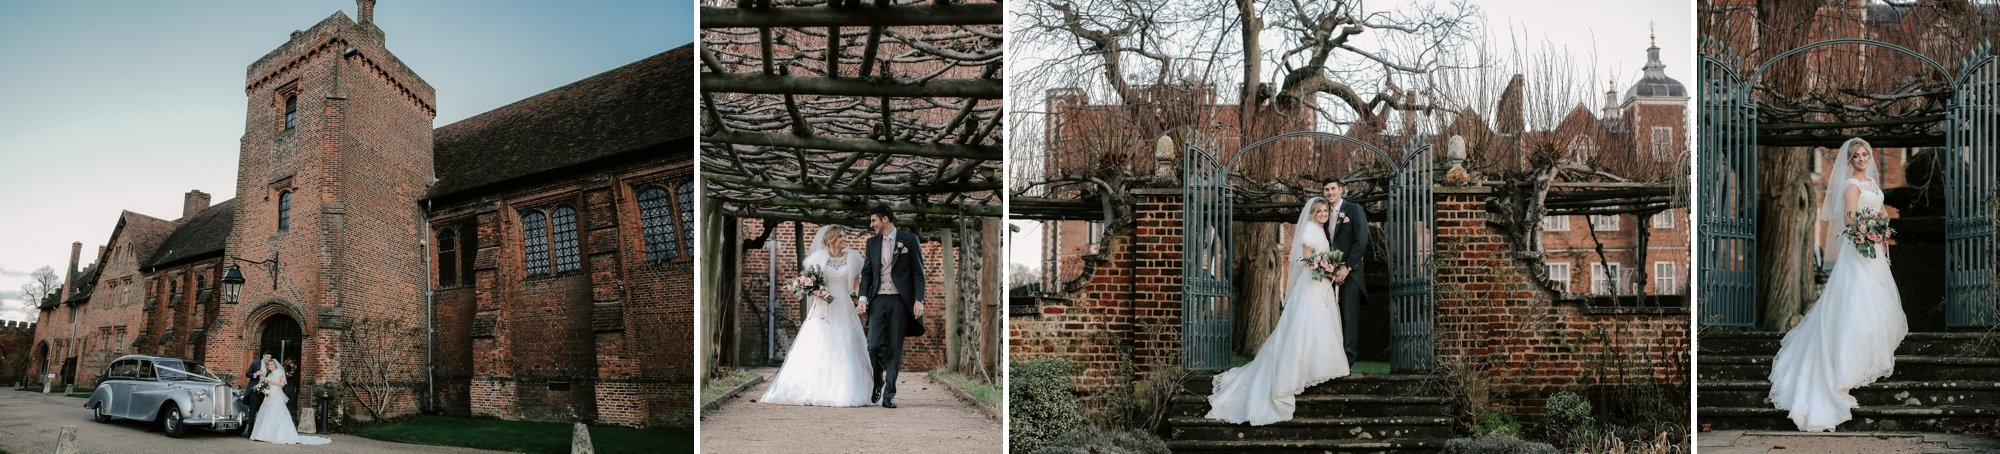 Winter wedding Hatfield House